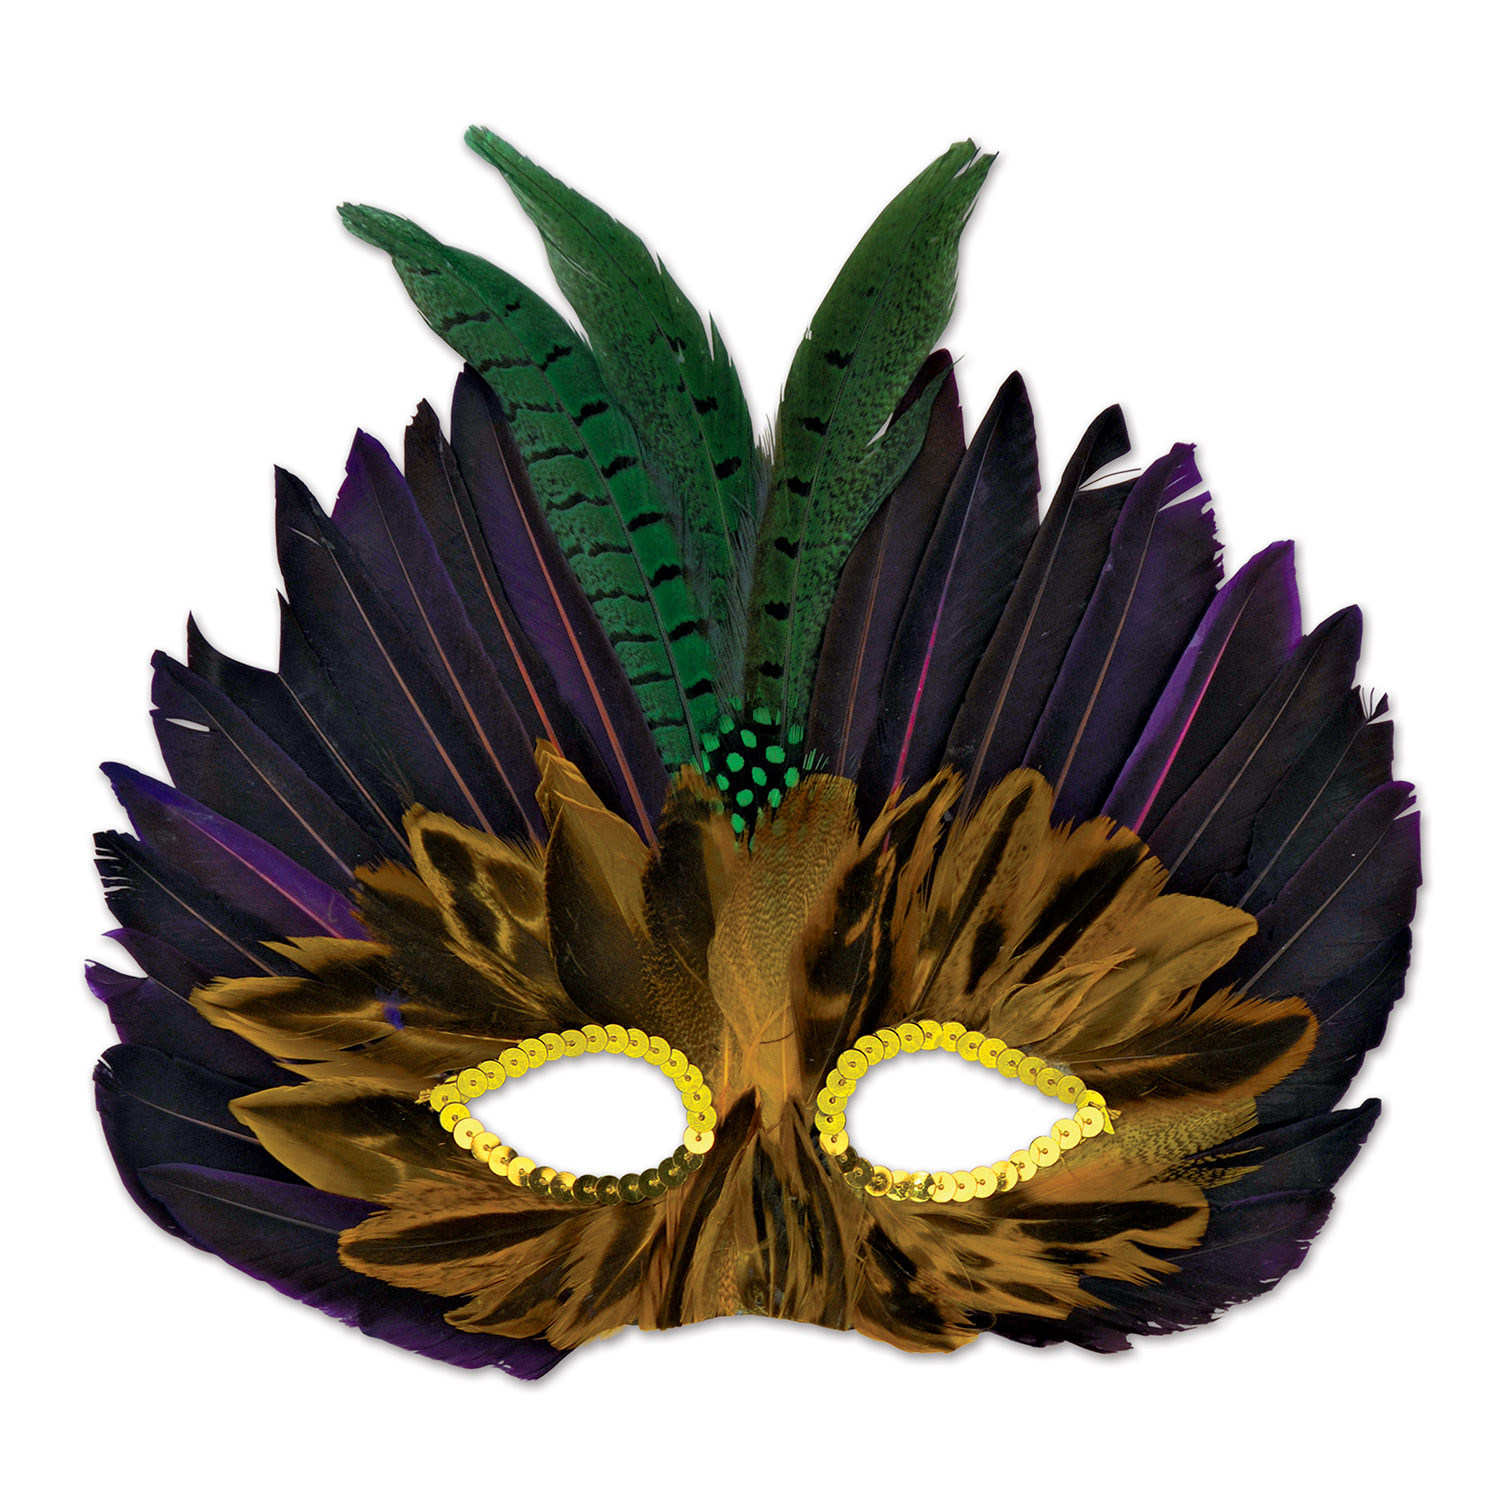 Mardi Gras Feathered Mask (Pack of 12) Mardi Gras, Feathered Mask, Wholesale Mask, Gold Green Purple, Fat Tuesday, Party Accessories, Mardi Gras ideas, Inexpensive party supplies, Cheap party goods, Fancy Mask, Halloween masks